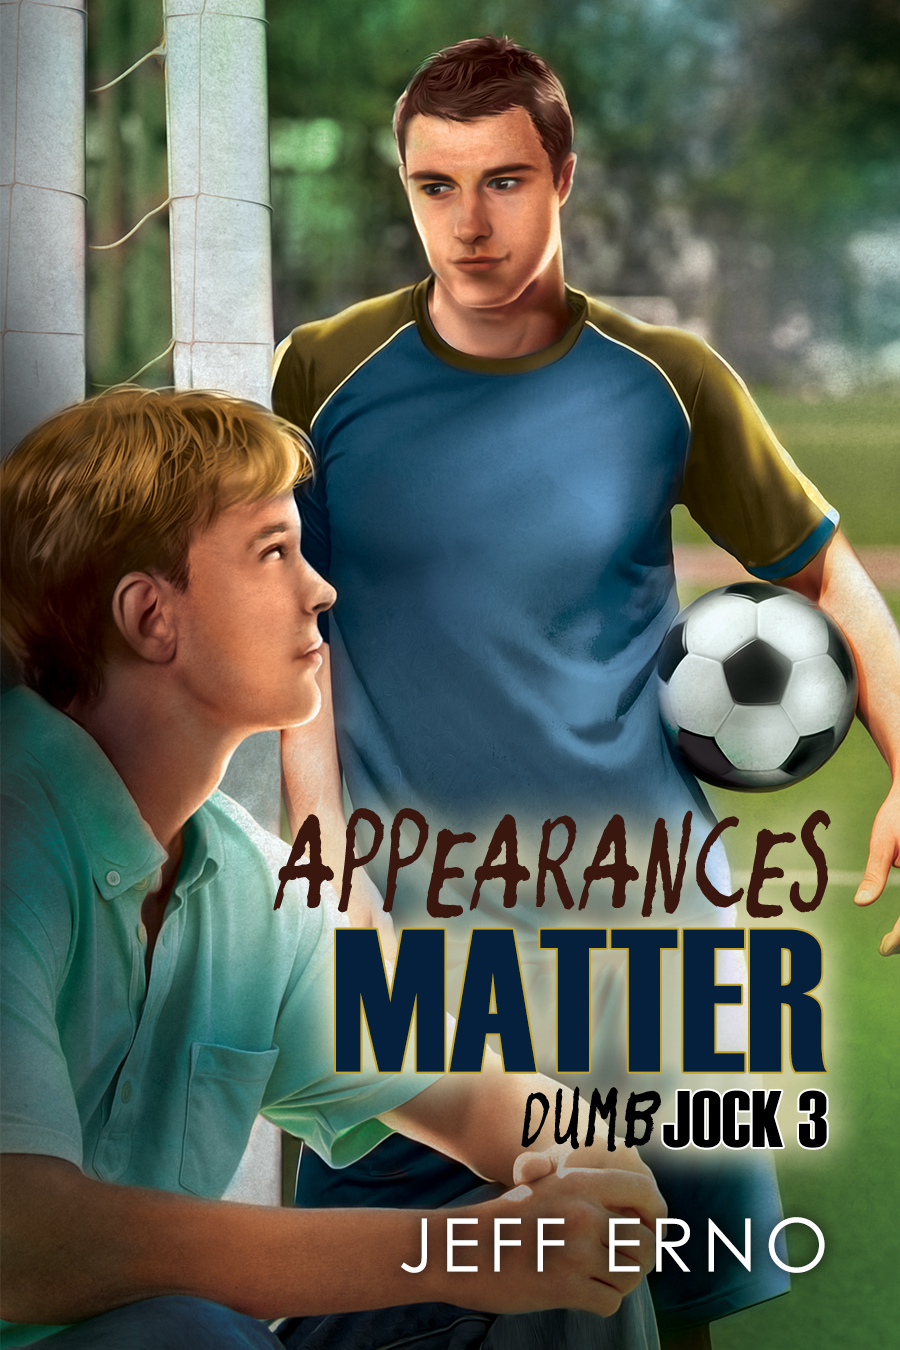 Dumb Jock 3: Appearances Matter by Jeff Erno